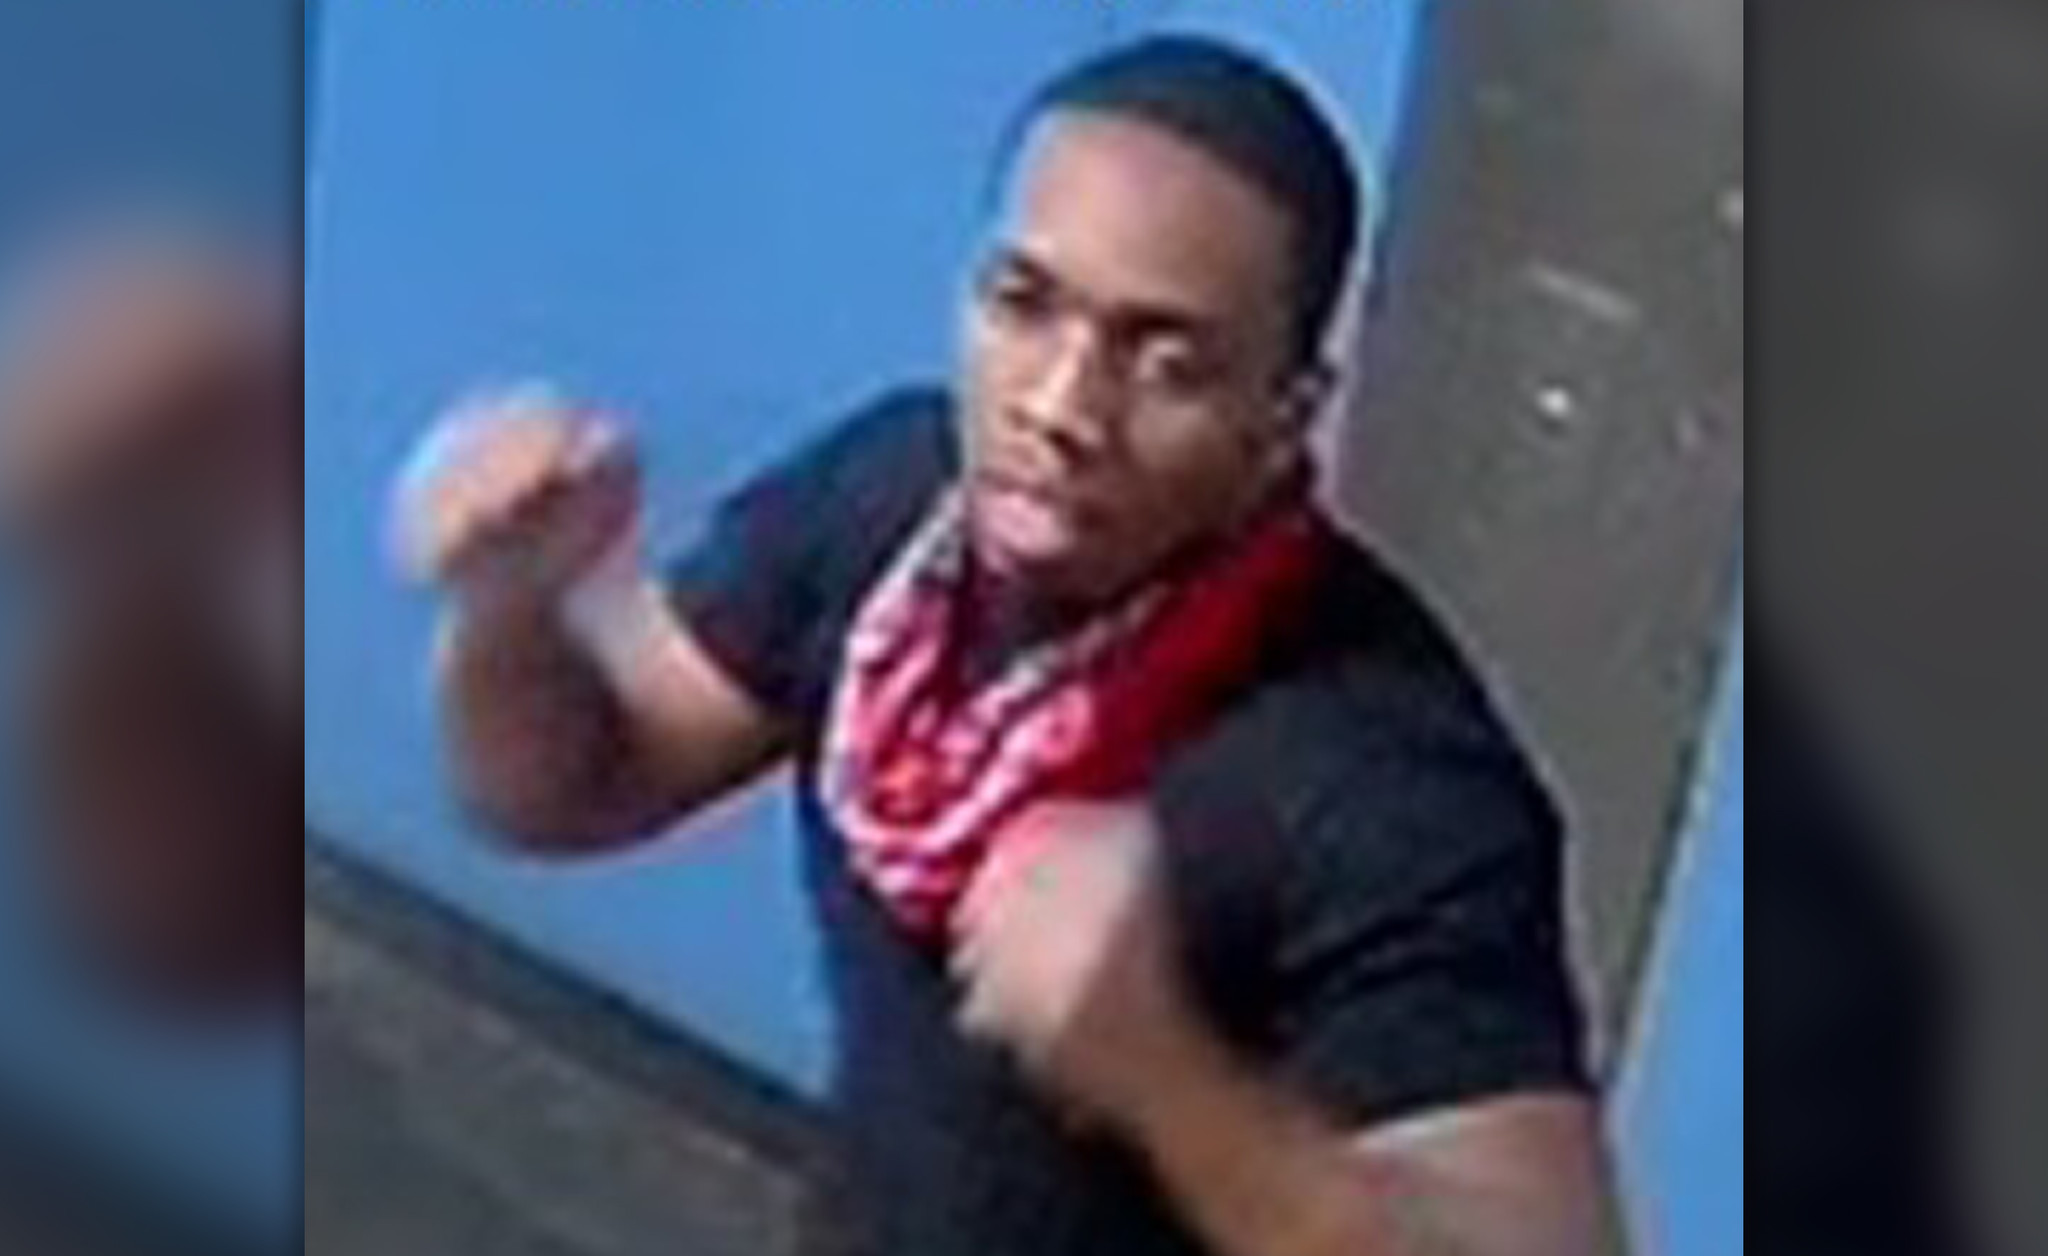 NYC man, 71, punched without warning, cops seeking suspect